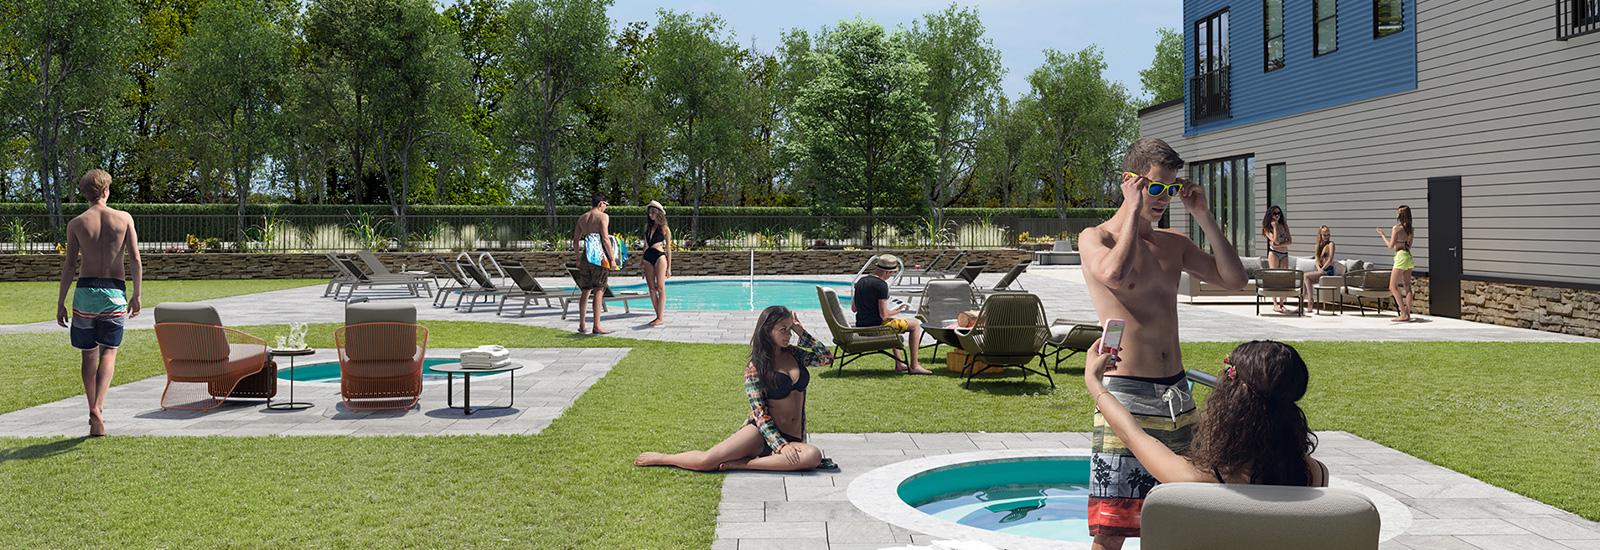 Residents Enjoying The Pool and Hot Tub Area